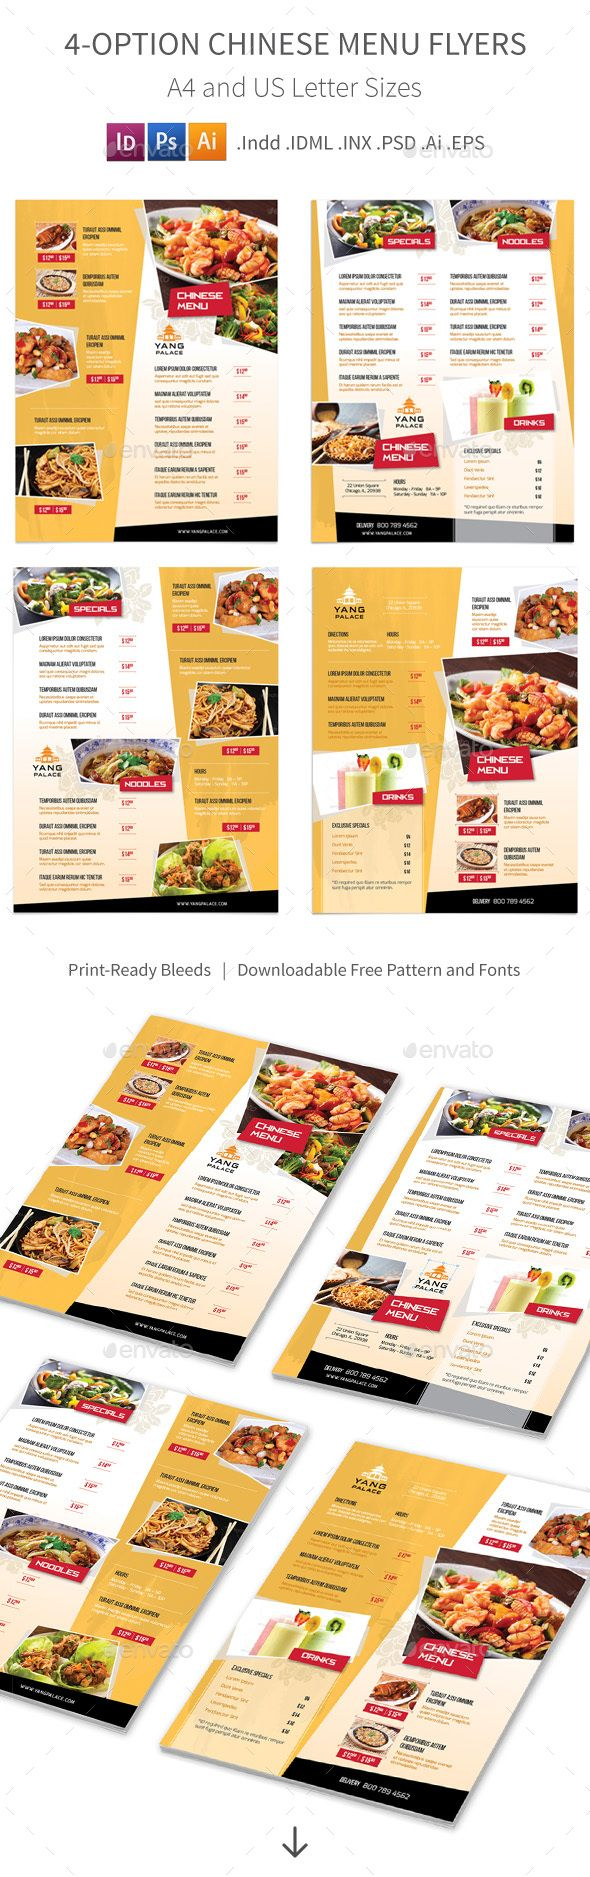 4 Options Chinese Restaurant Menu Flyers Template PSD, Vector EPS, InDesign INDD, AI Illustrator. Download here: http://graphicriver.net/item/chinese-restaurant-menu-flyers-4-options/16097123?ref=ksioks